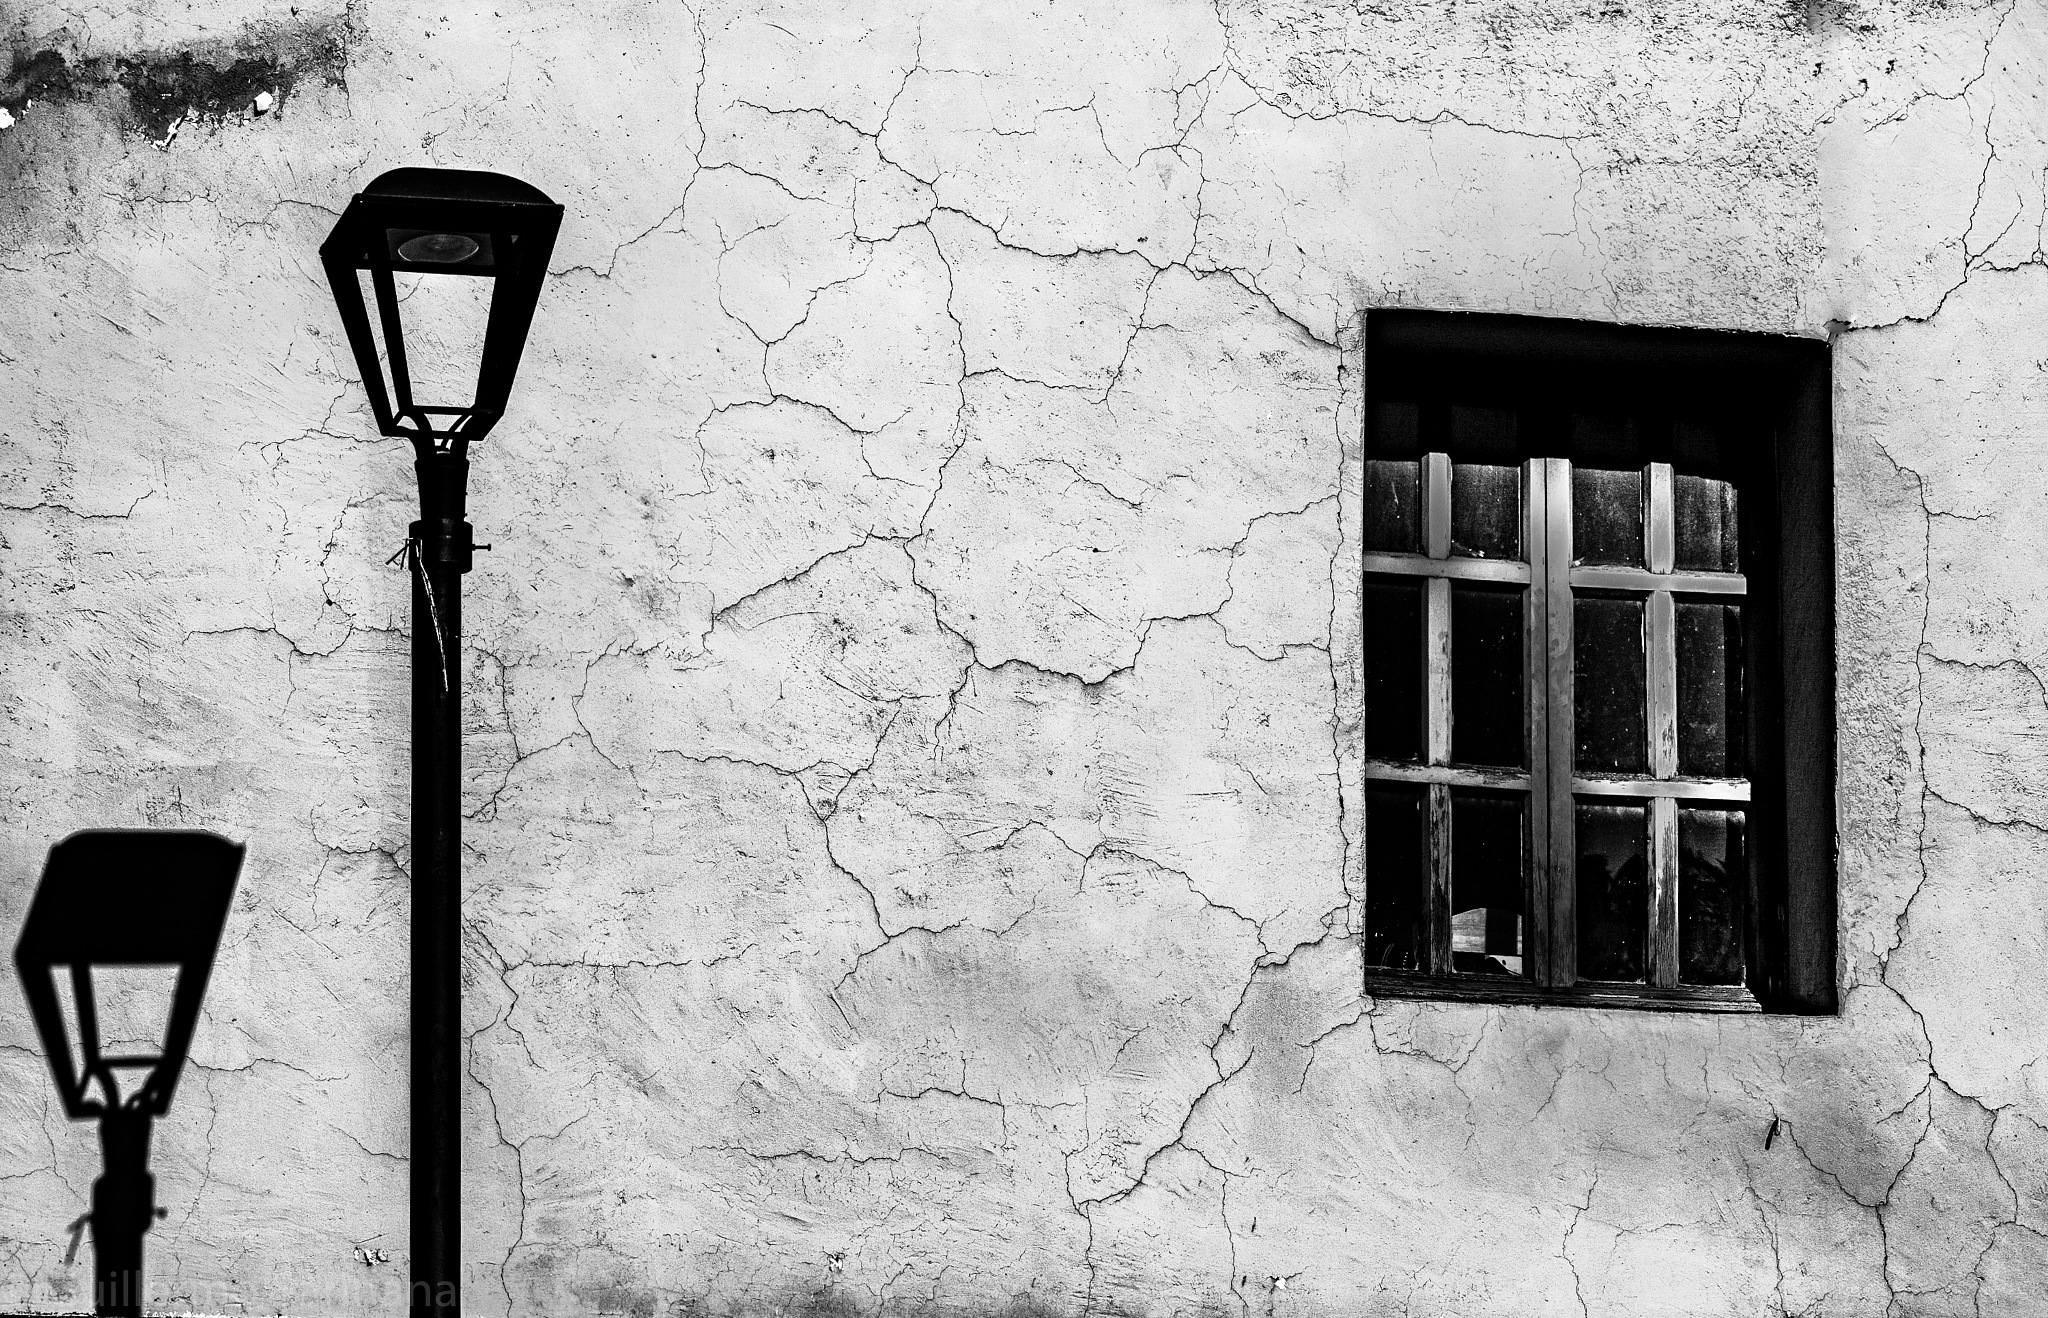 Windows by Guillermo Sariñana Siller